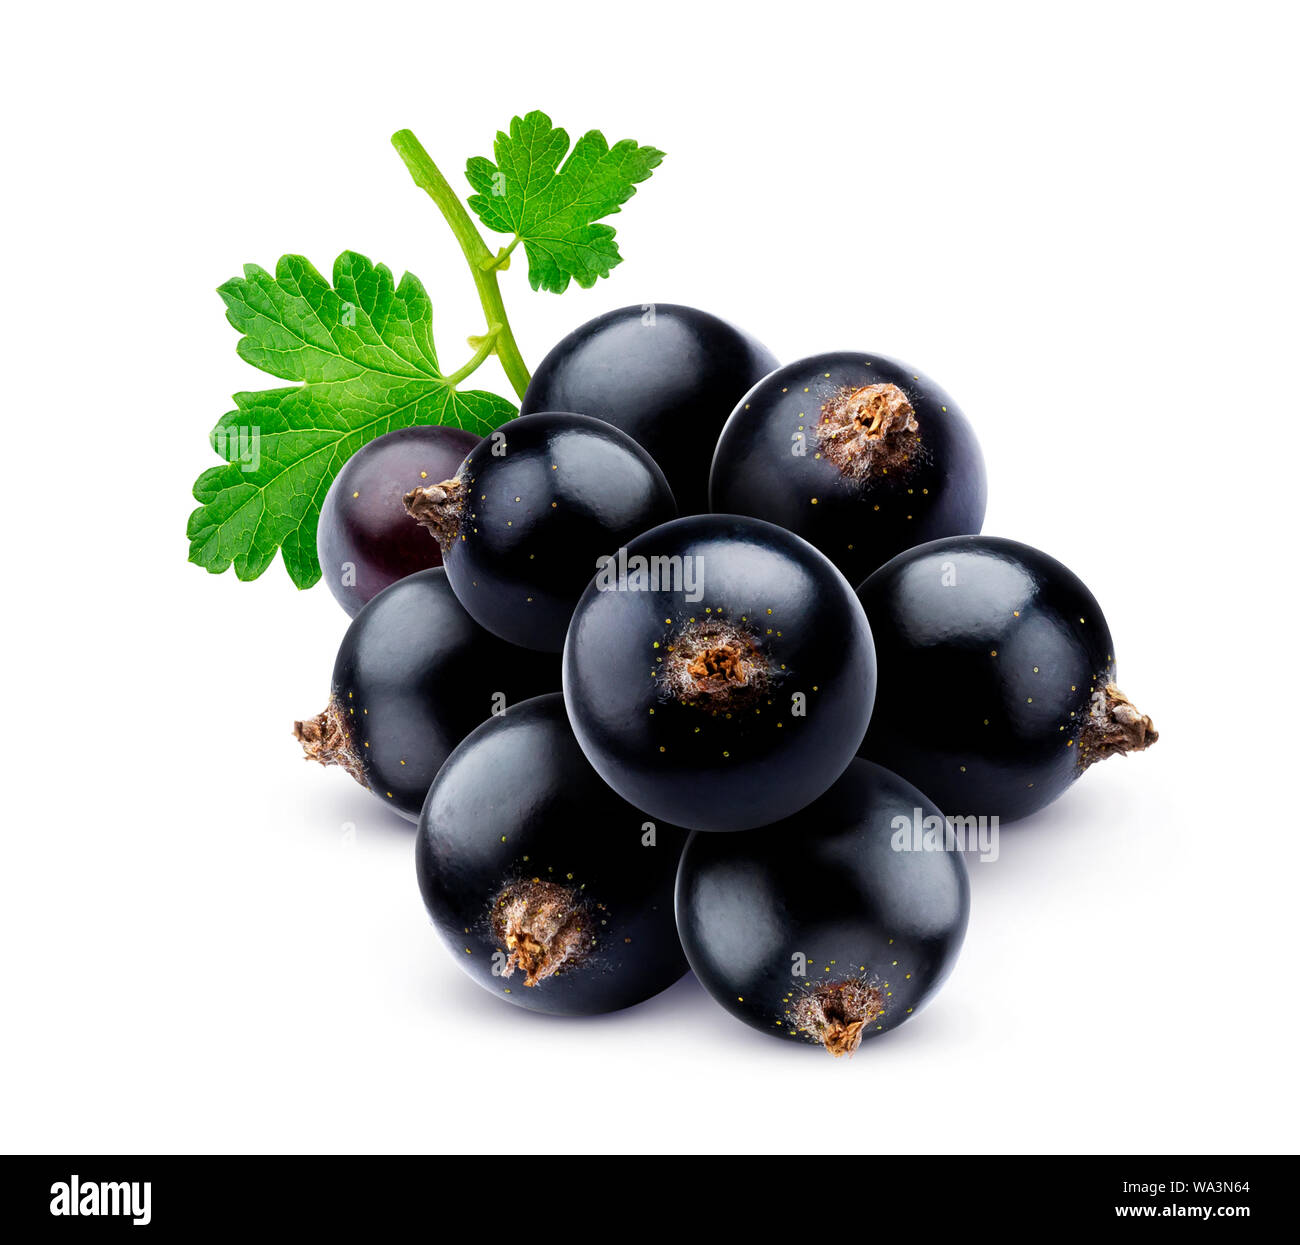 Bunch of black currant isolated on white background Stock Photo